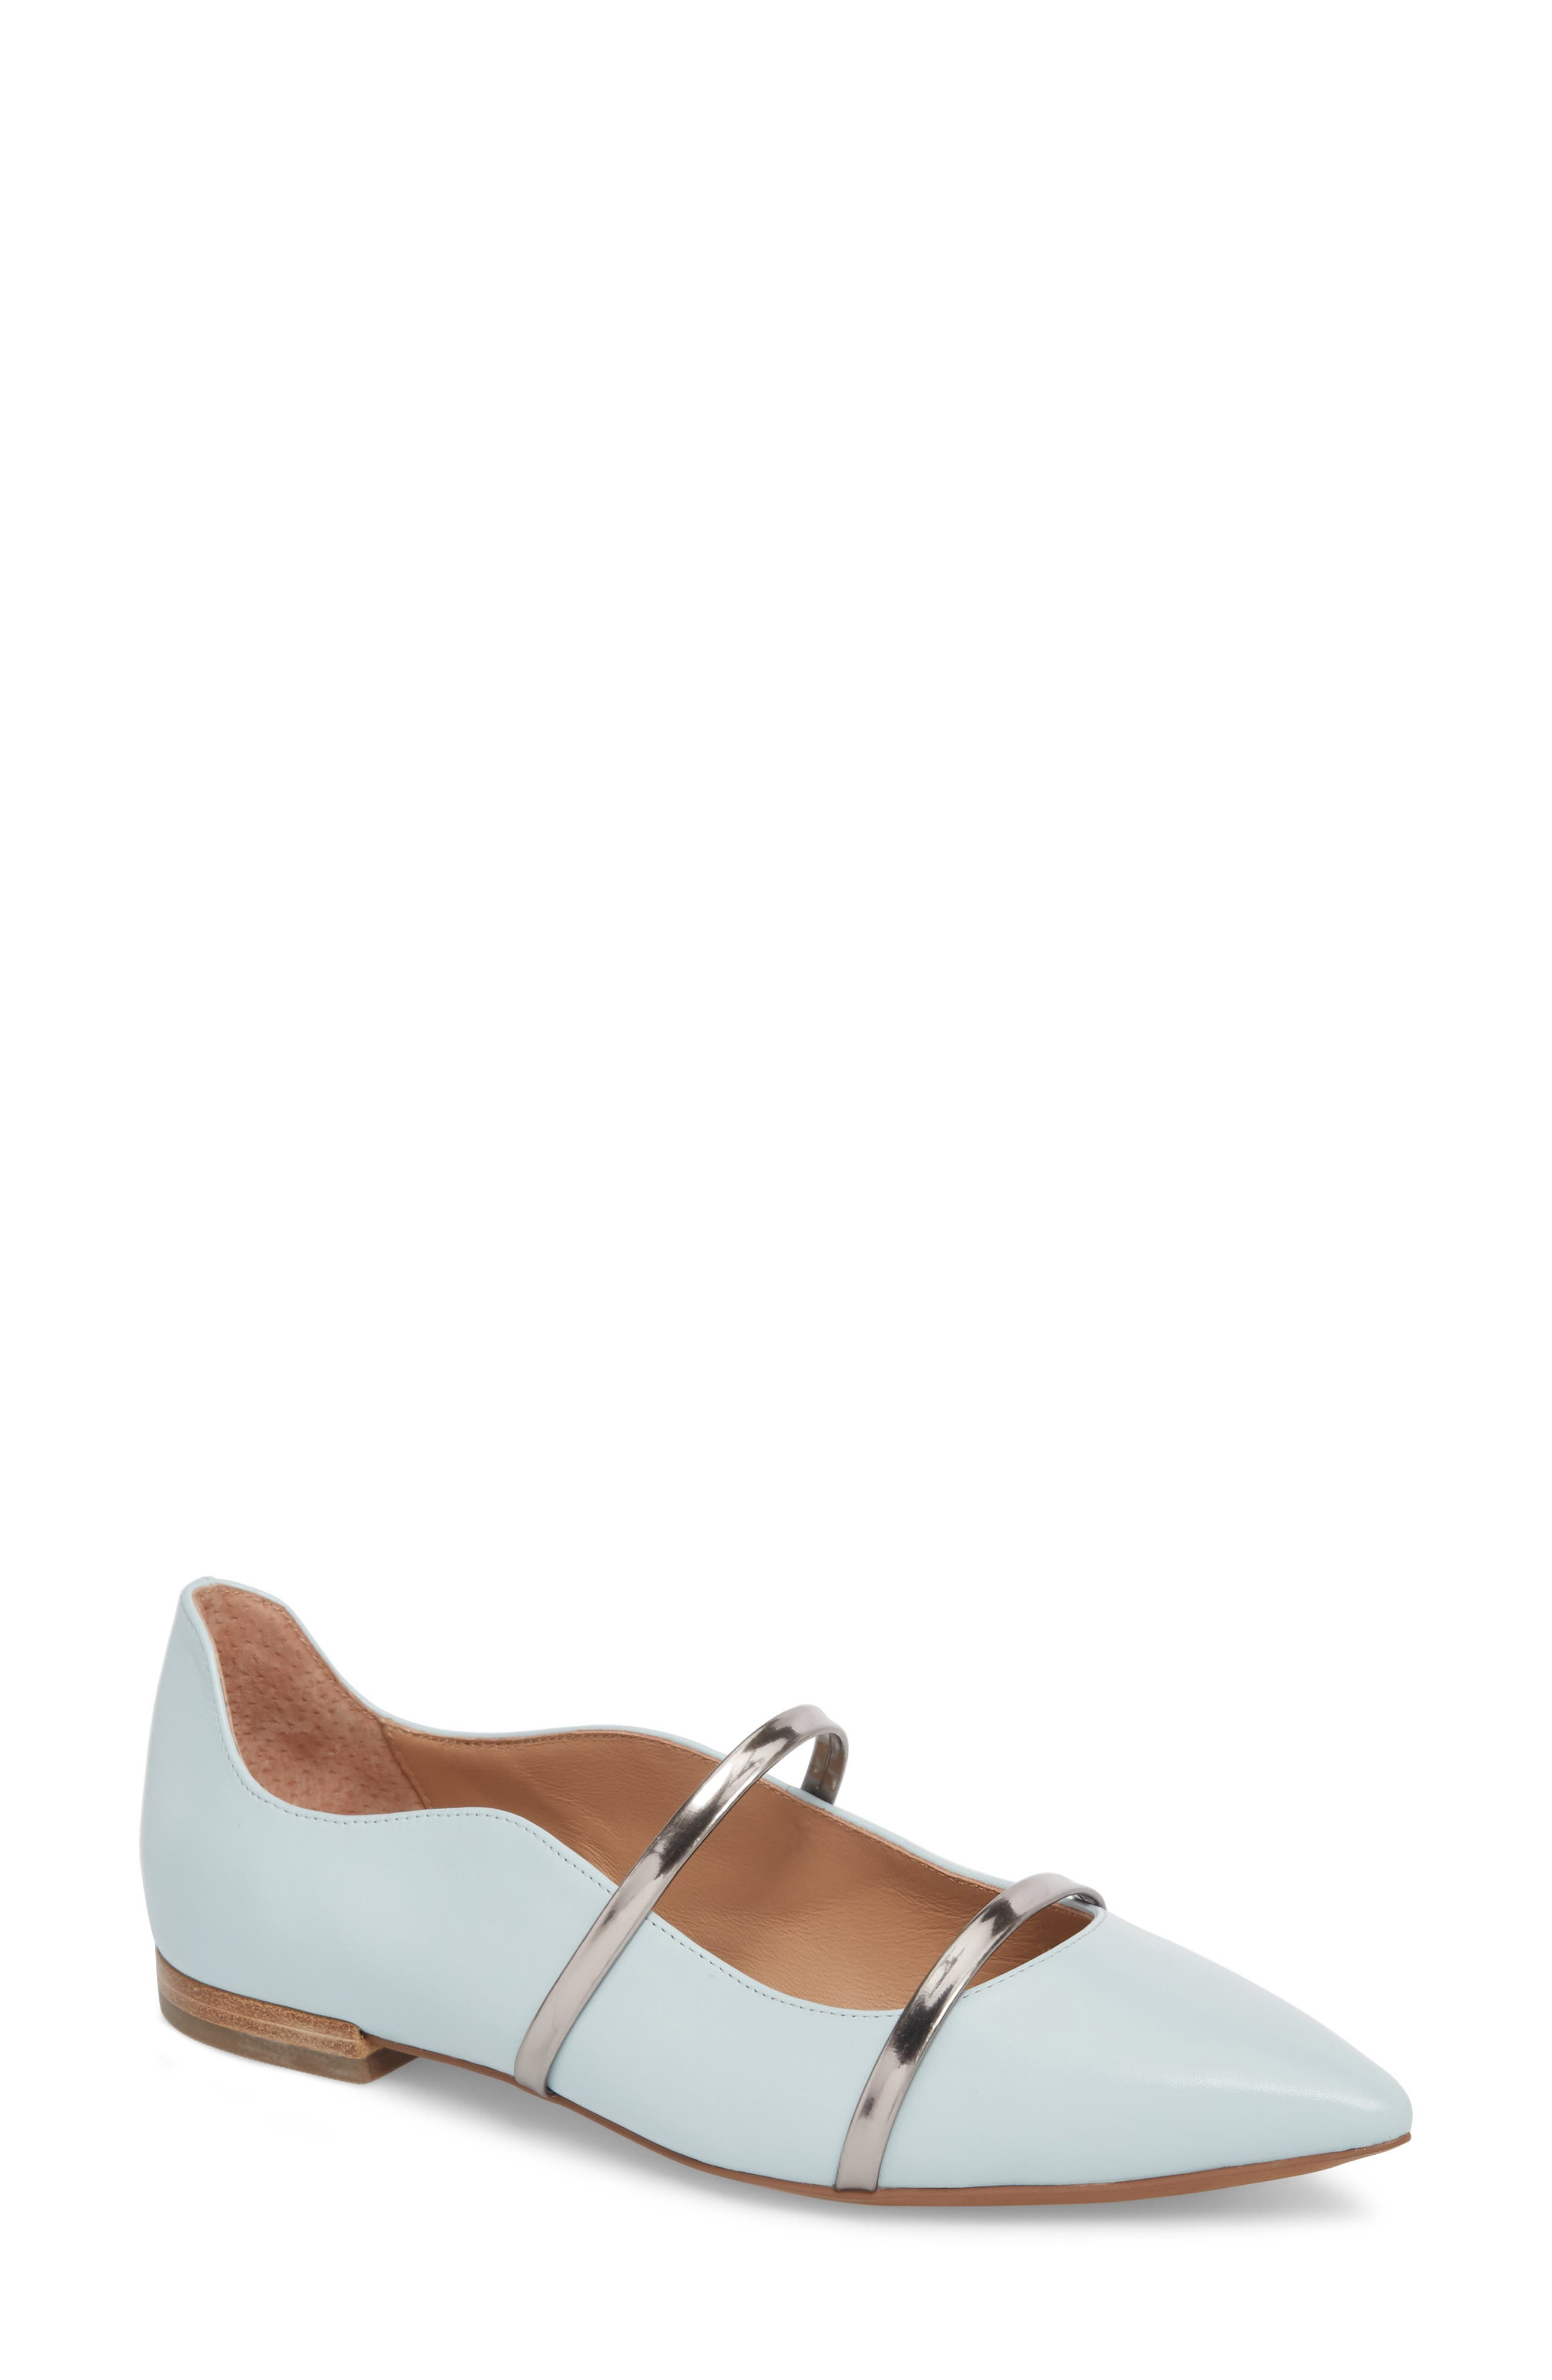 Emily Pointy Toe Flat,                         Main,                         color, Pale Blue/ Gunmetal Leather